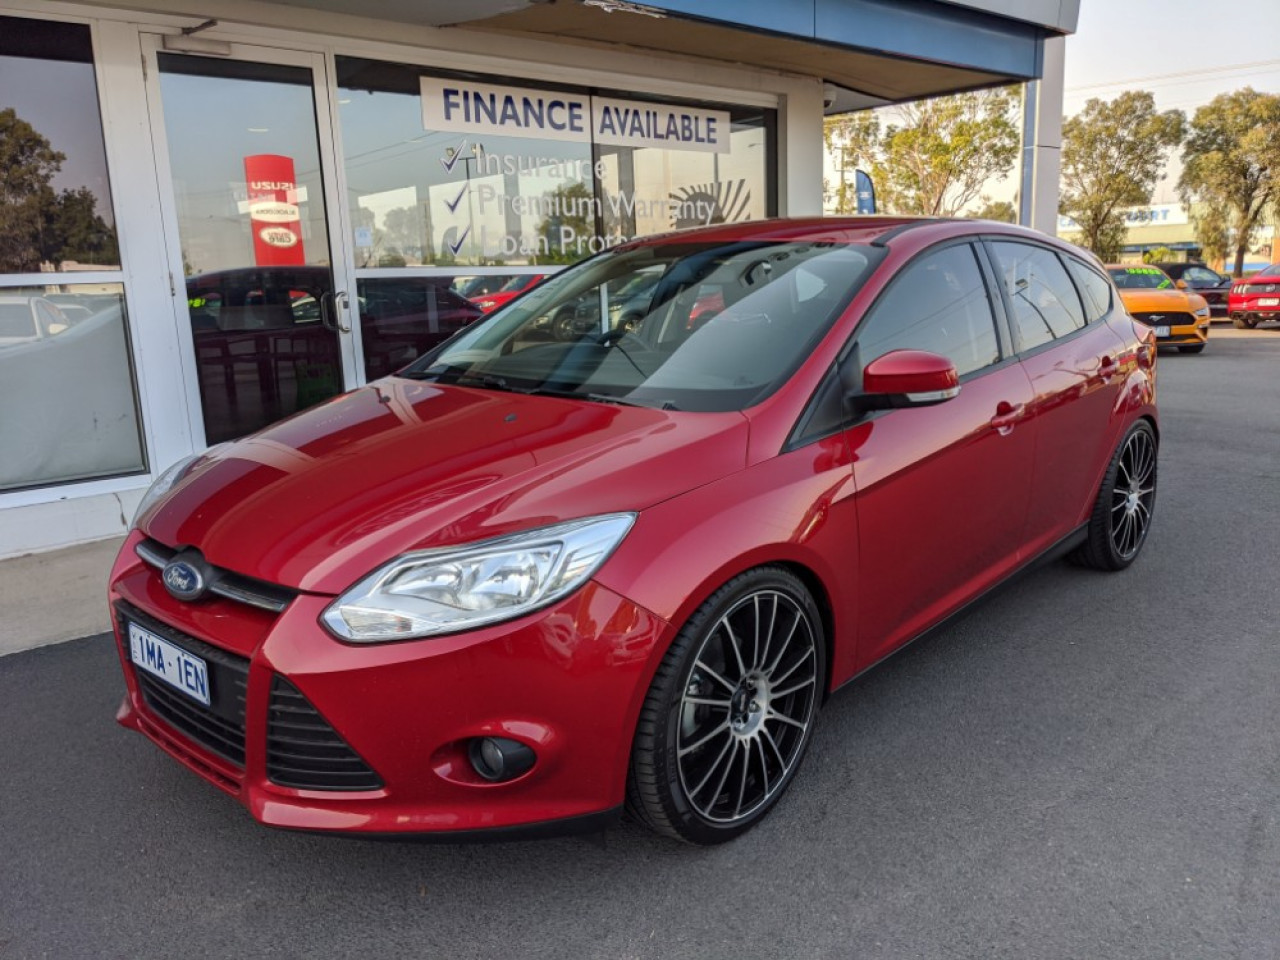 2013 Ford Focus LW MKII TREND Hatch